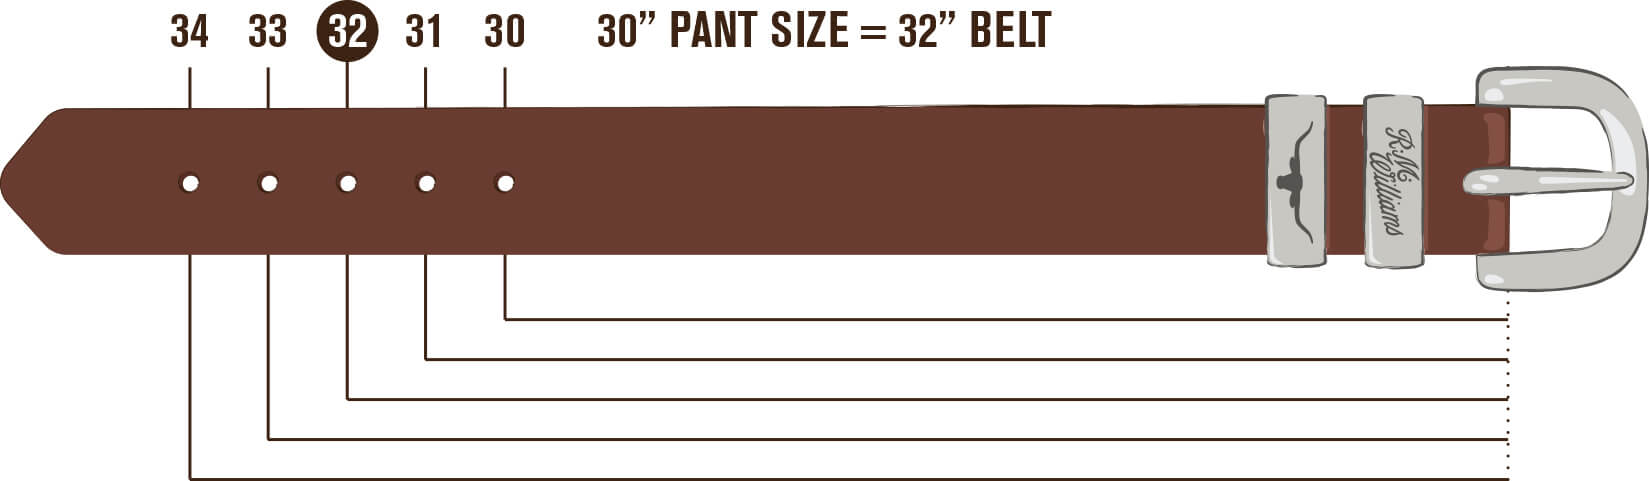 Mens Belt Size Guide